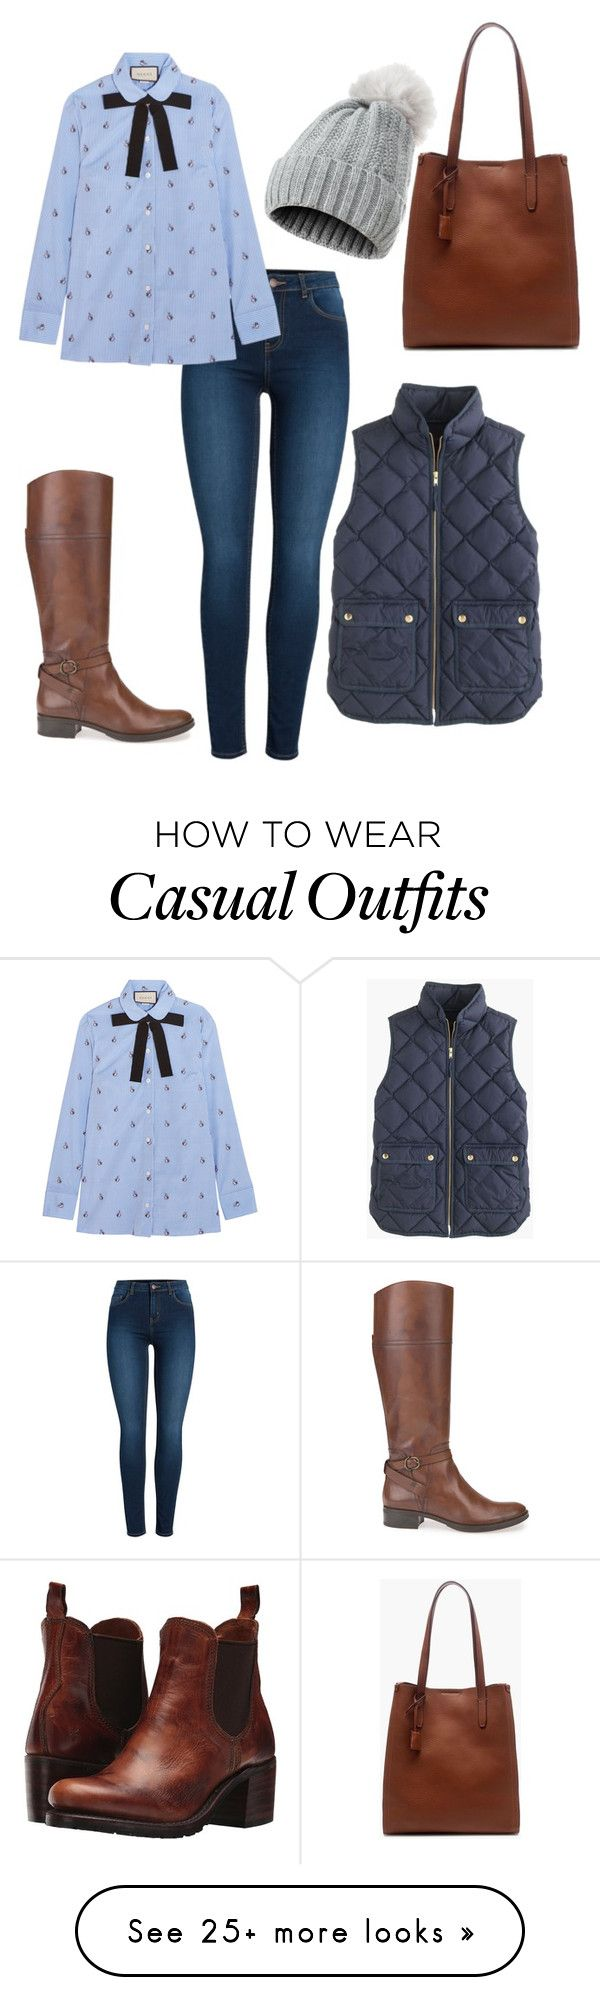 """""""Preppy fall style - casual chic - classy style"""" by svenjaschneeweiss on Polyvore featuring Pieces, Gucci, Frye, Geox and J.Crew"""